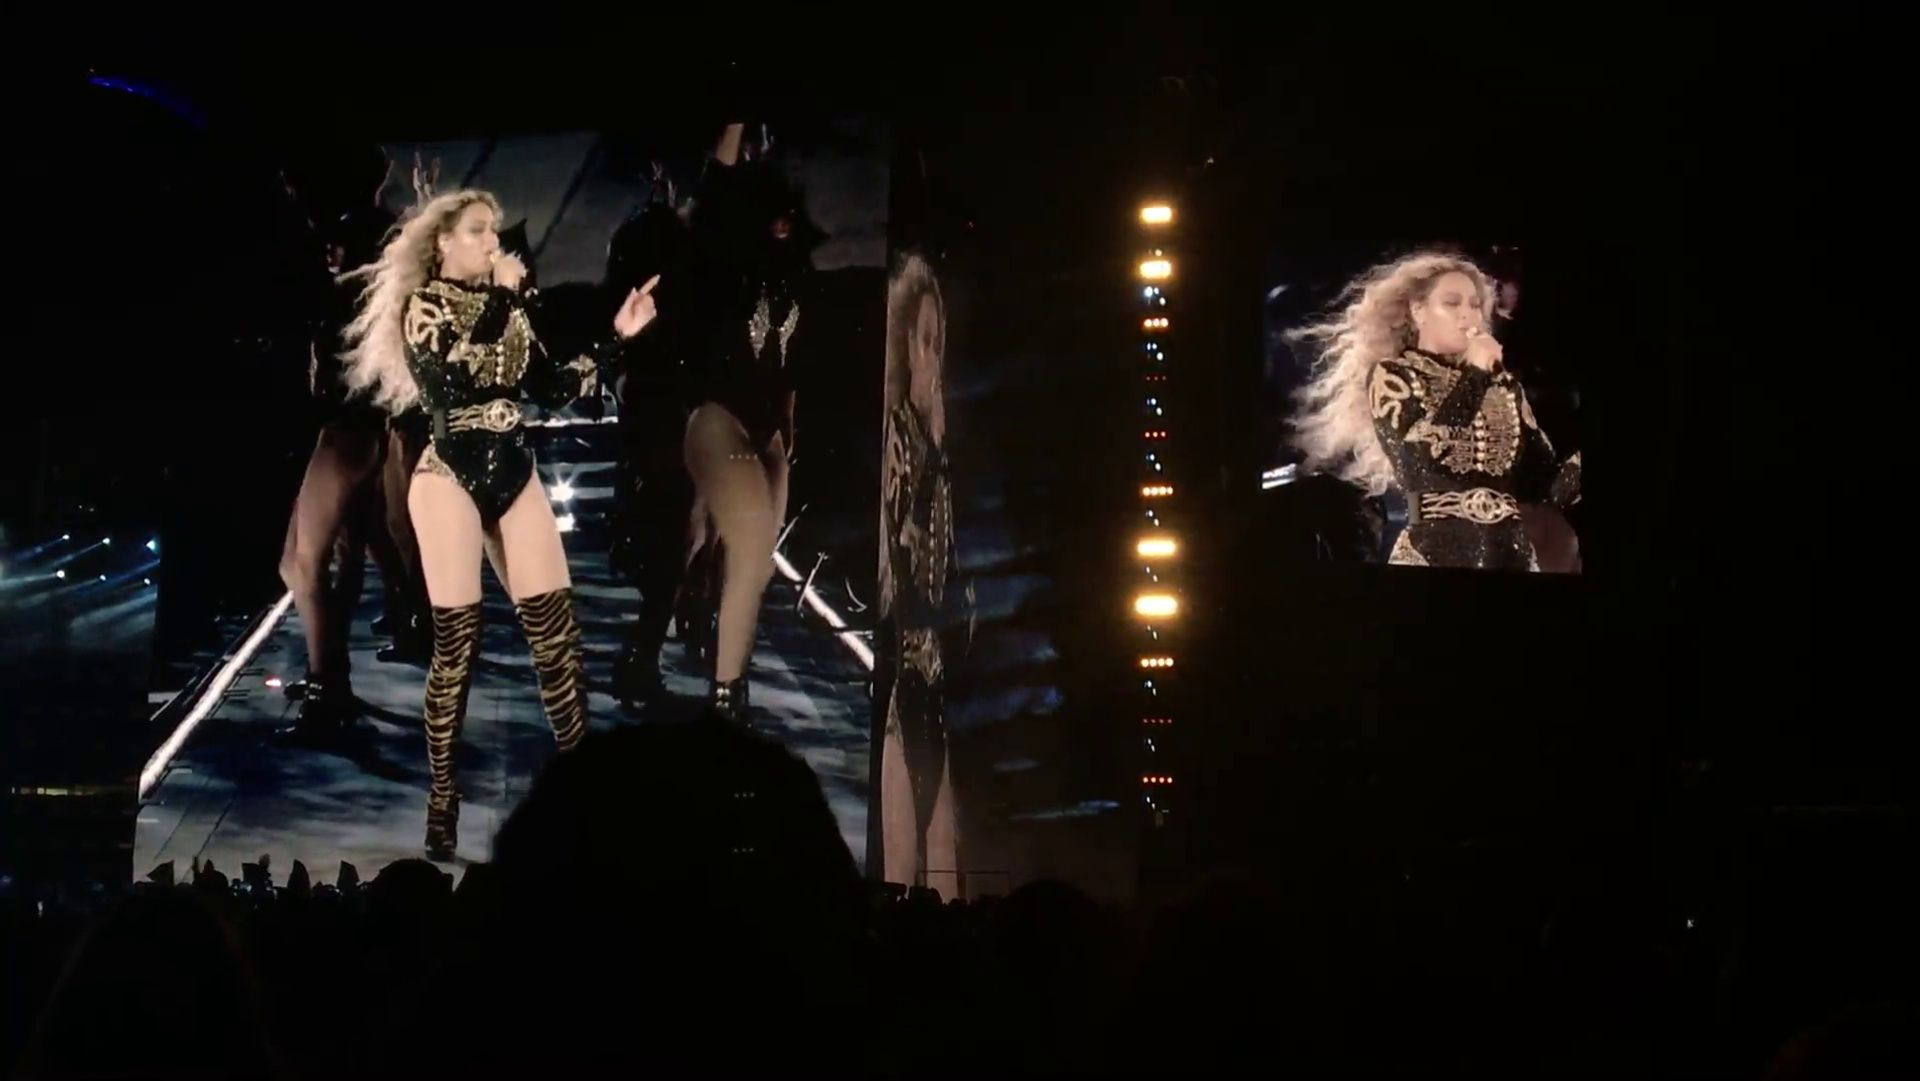 Beyoncé Formation World Tour Soldier Field Chicago Illinois 28.05.2016 ( video )